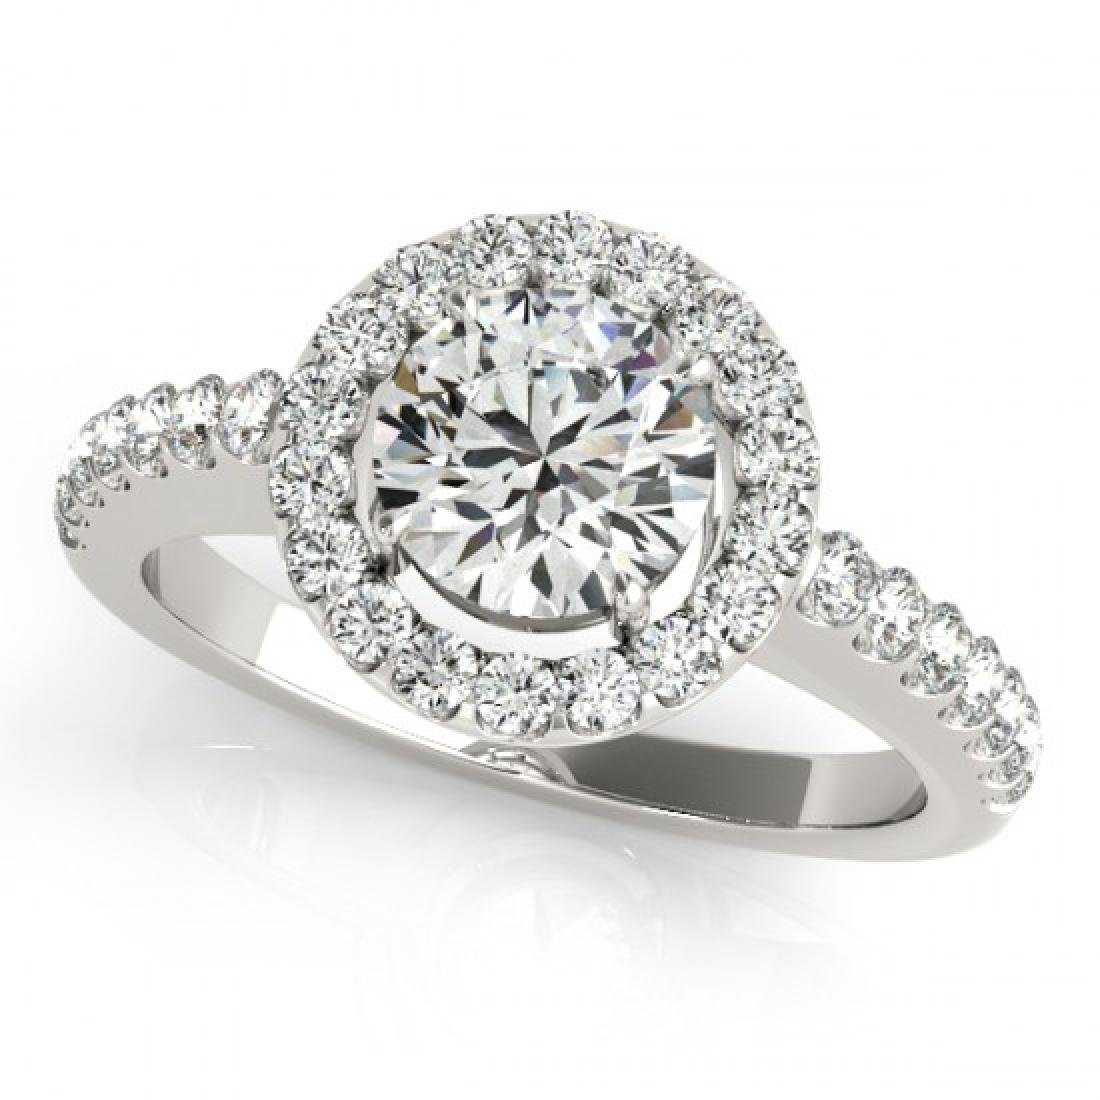 0.76 CTW Certified VS/SI Diamond Solitaire Halo Ring